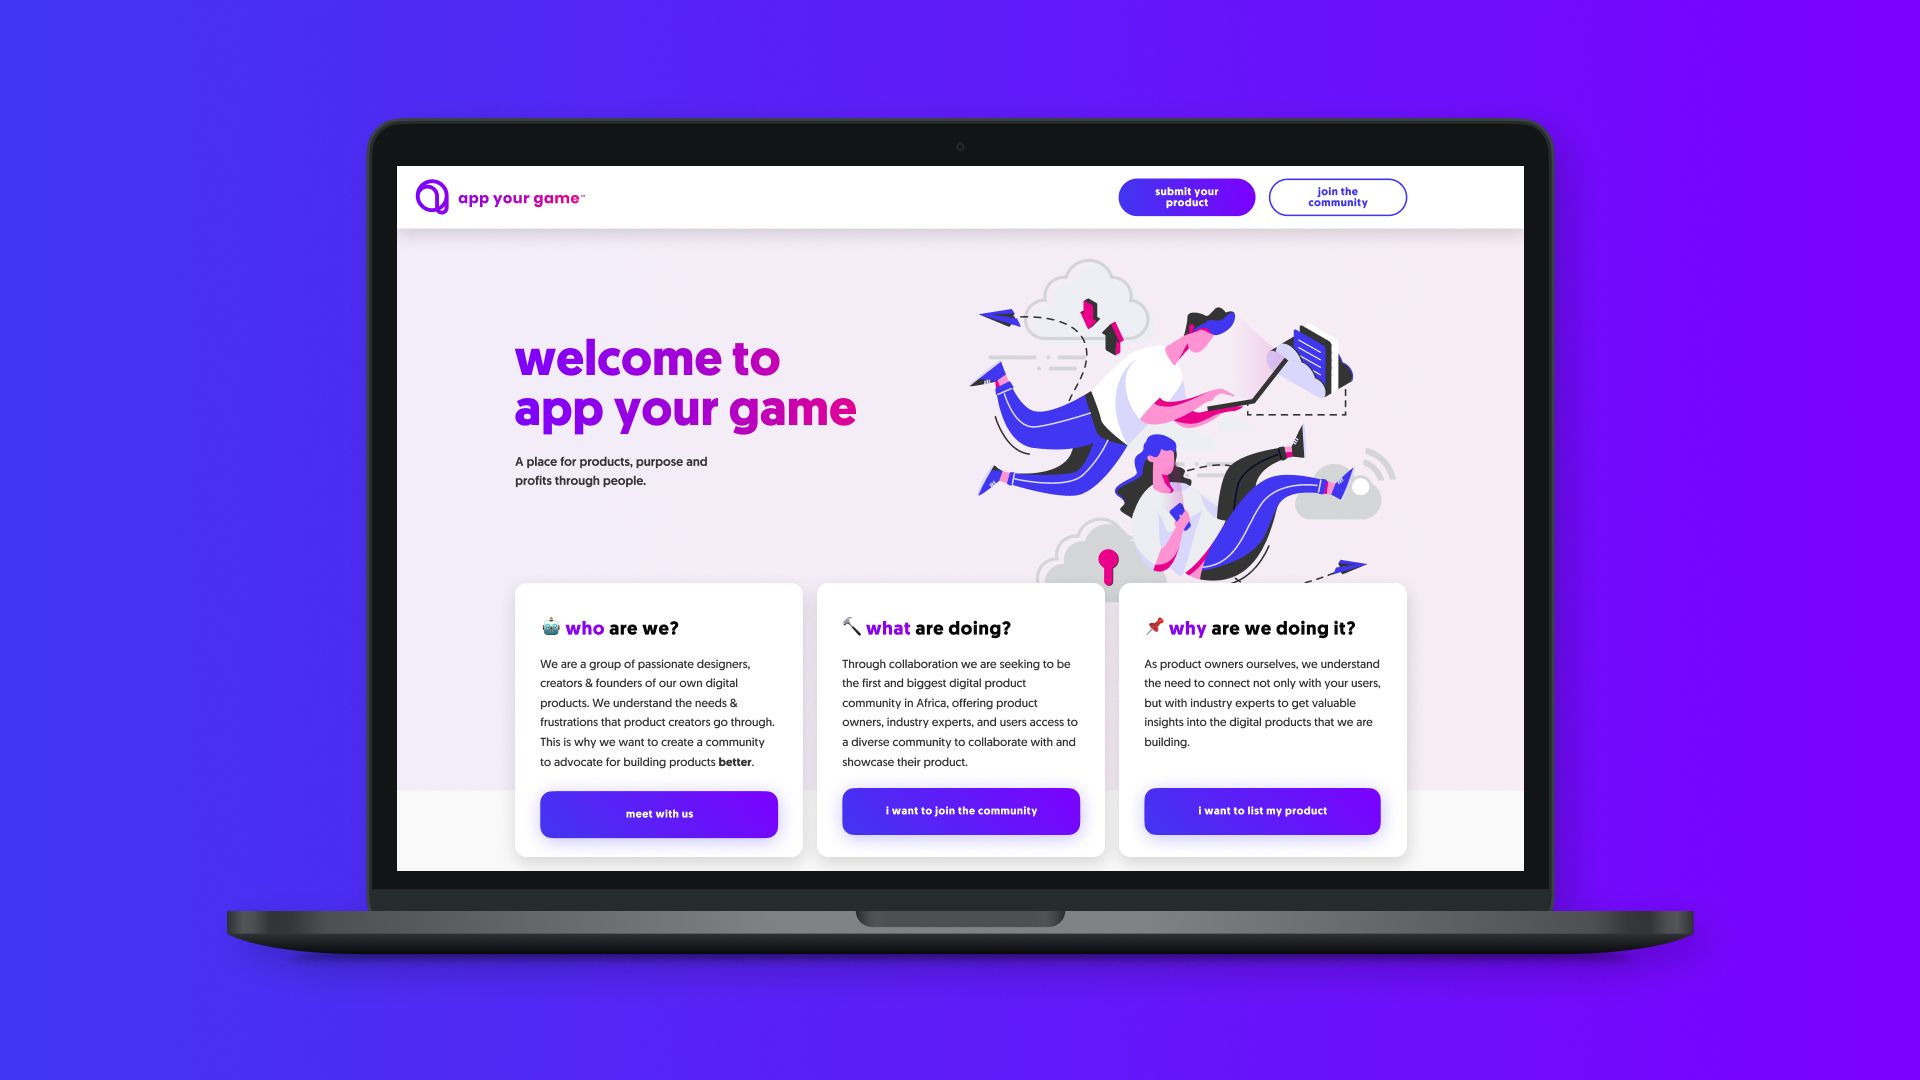 App Your Game